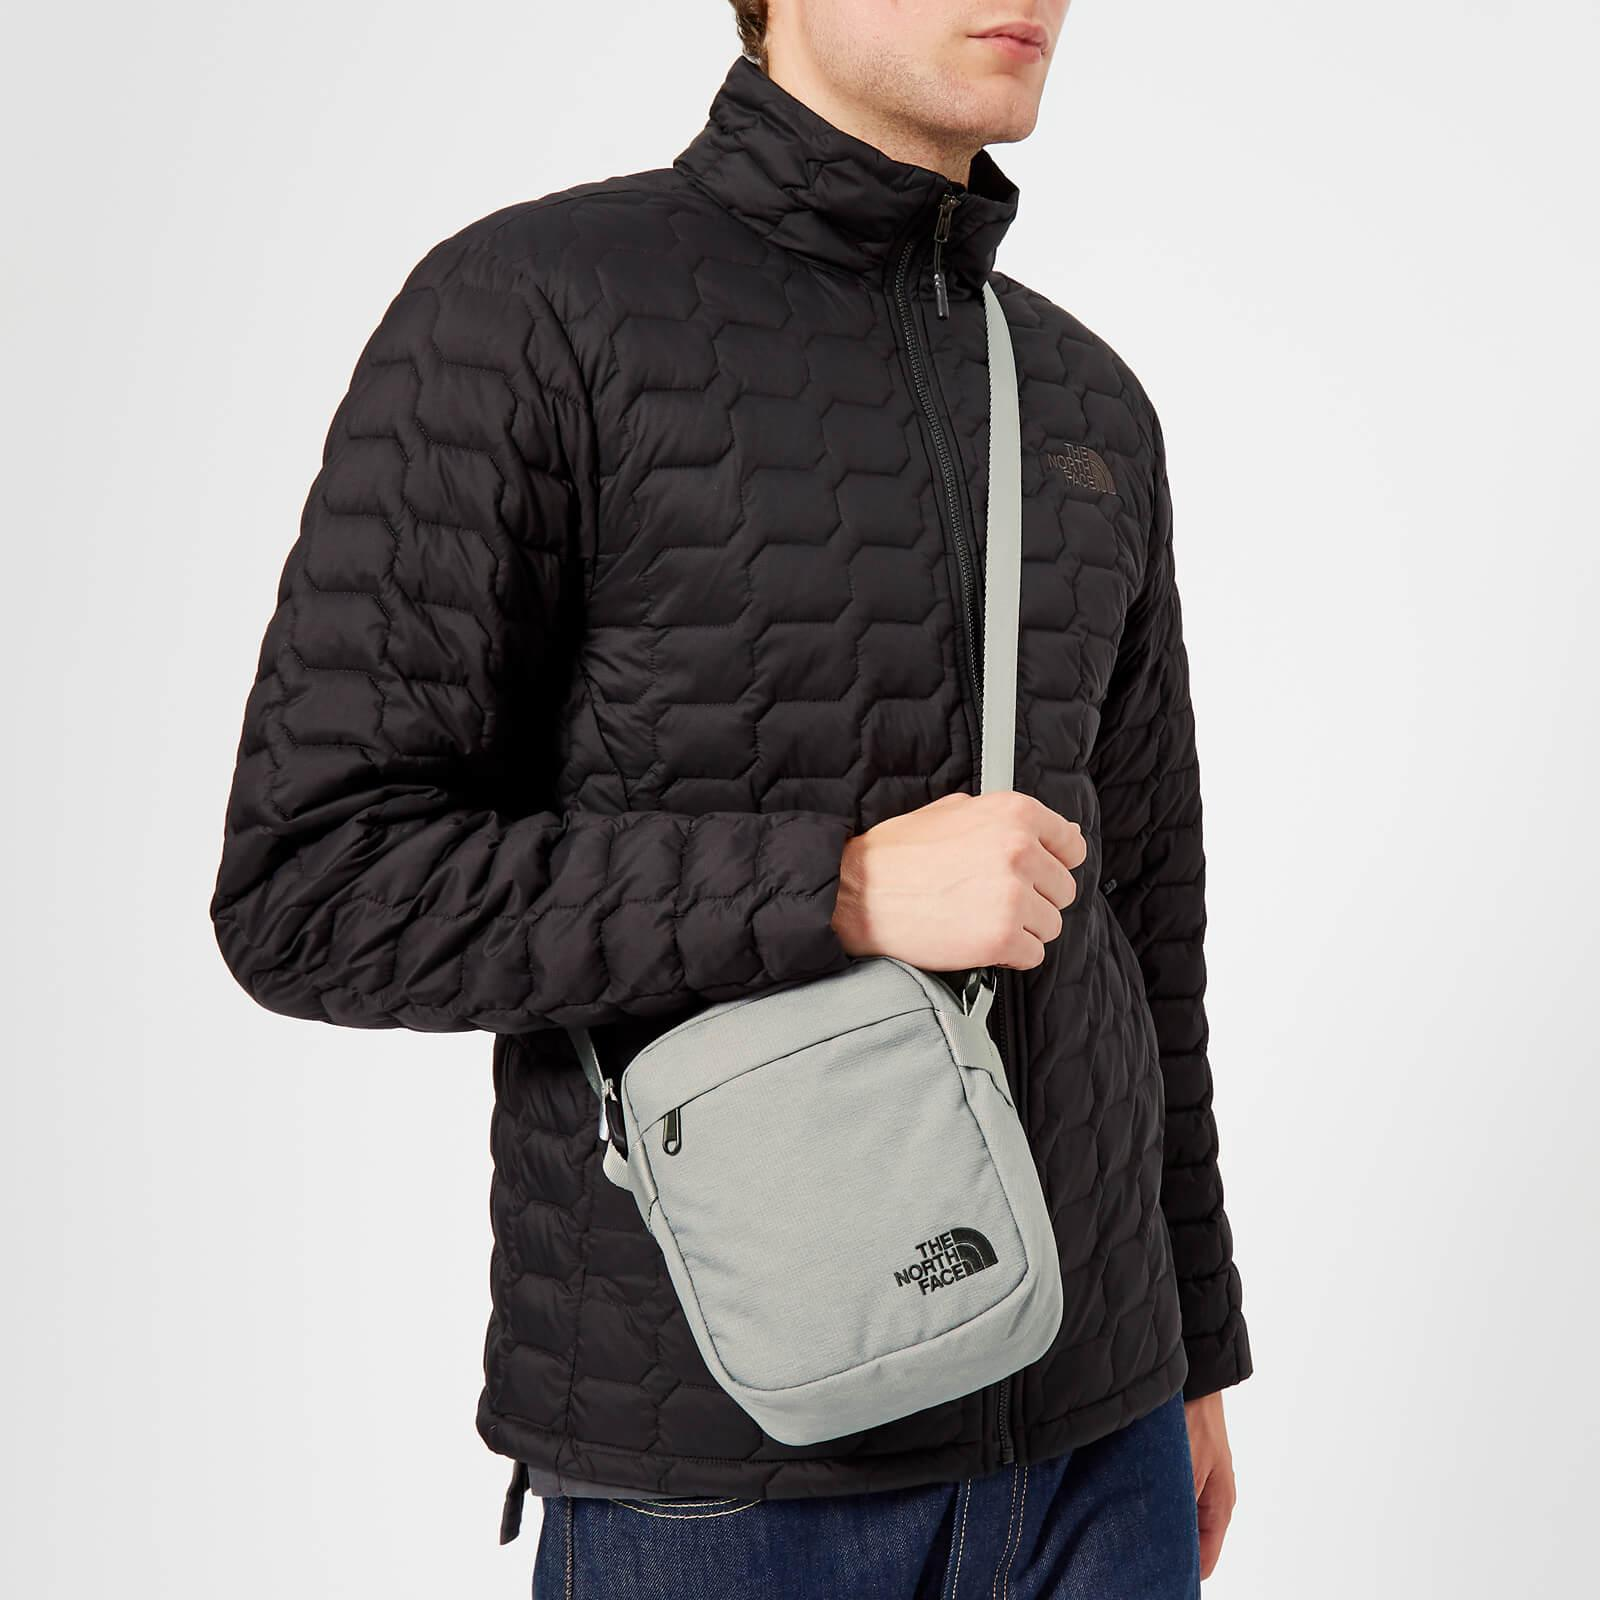 71fe2e9128a0f8 Lyst - The North Face Convertible Shoulder Bag in Gray